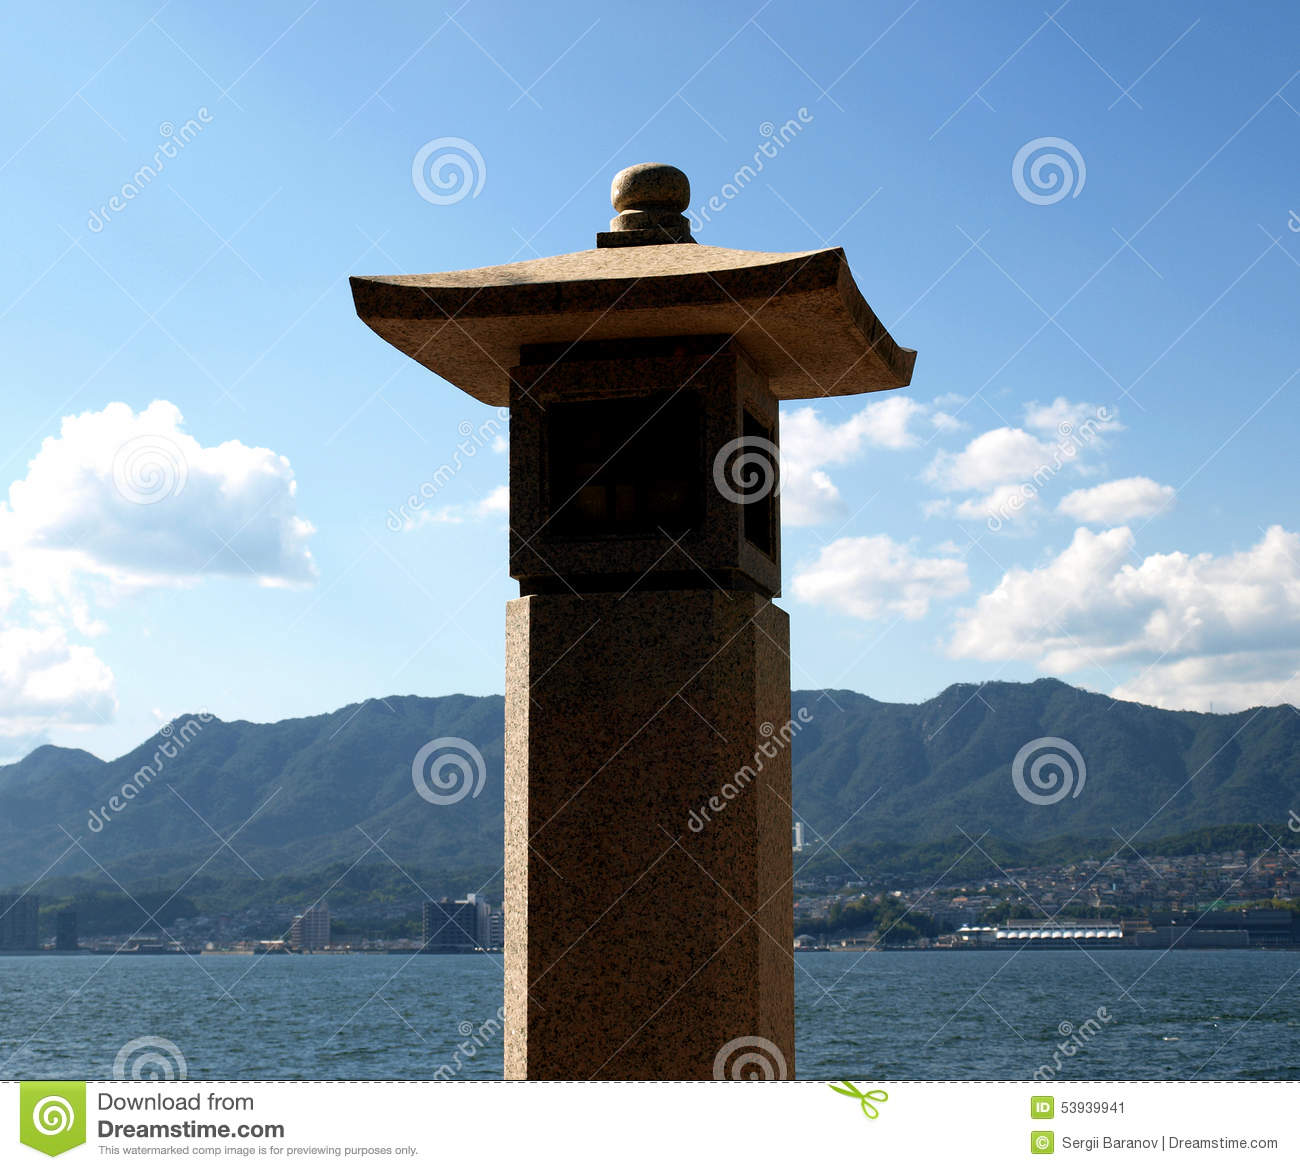 Symbolic Stone Lamp At Buddhist Temple Stock Image - Image: 53939941 for Temple Stone Lamp  257ylc